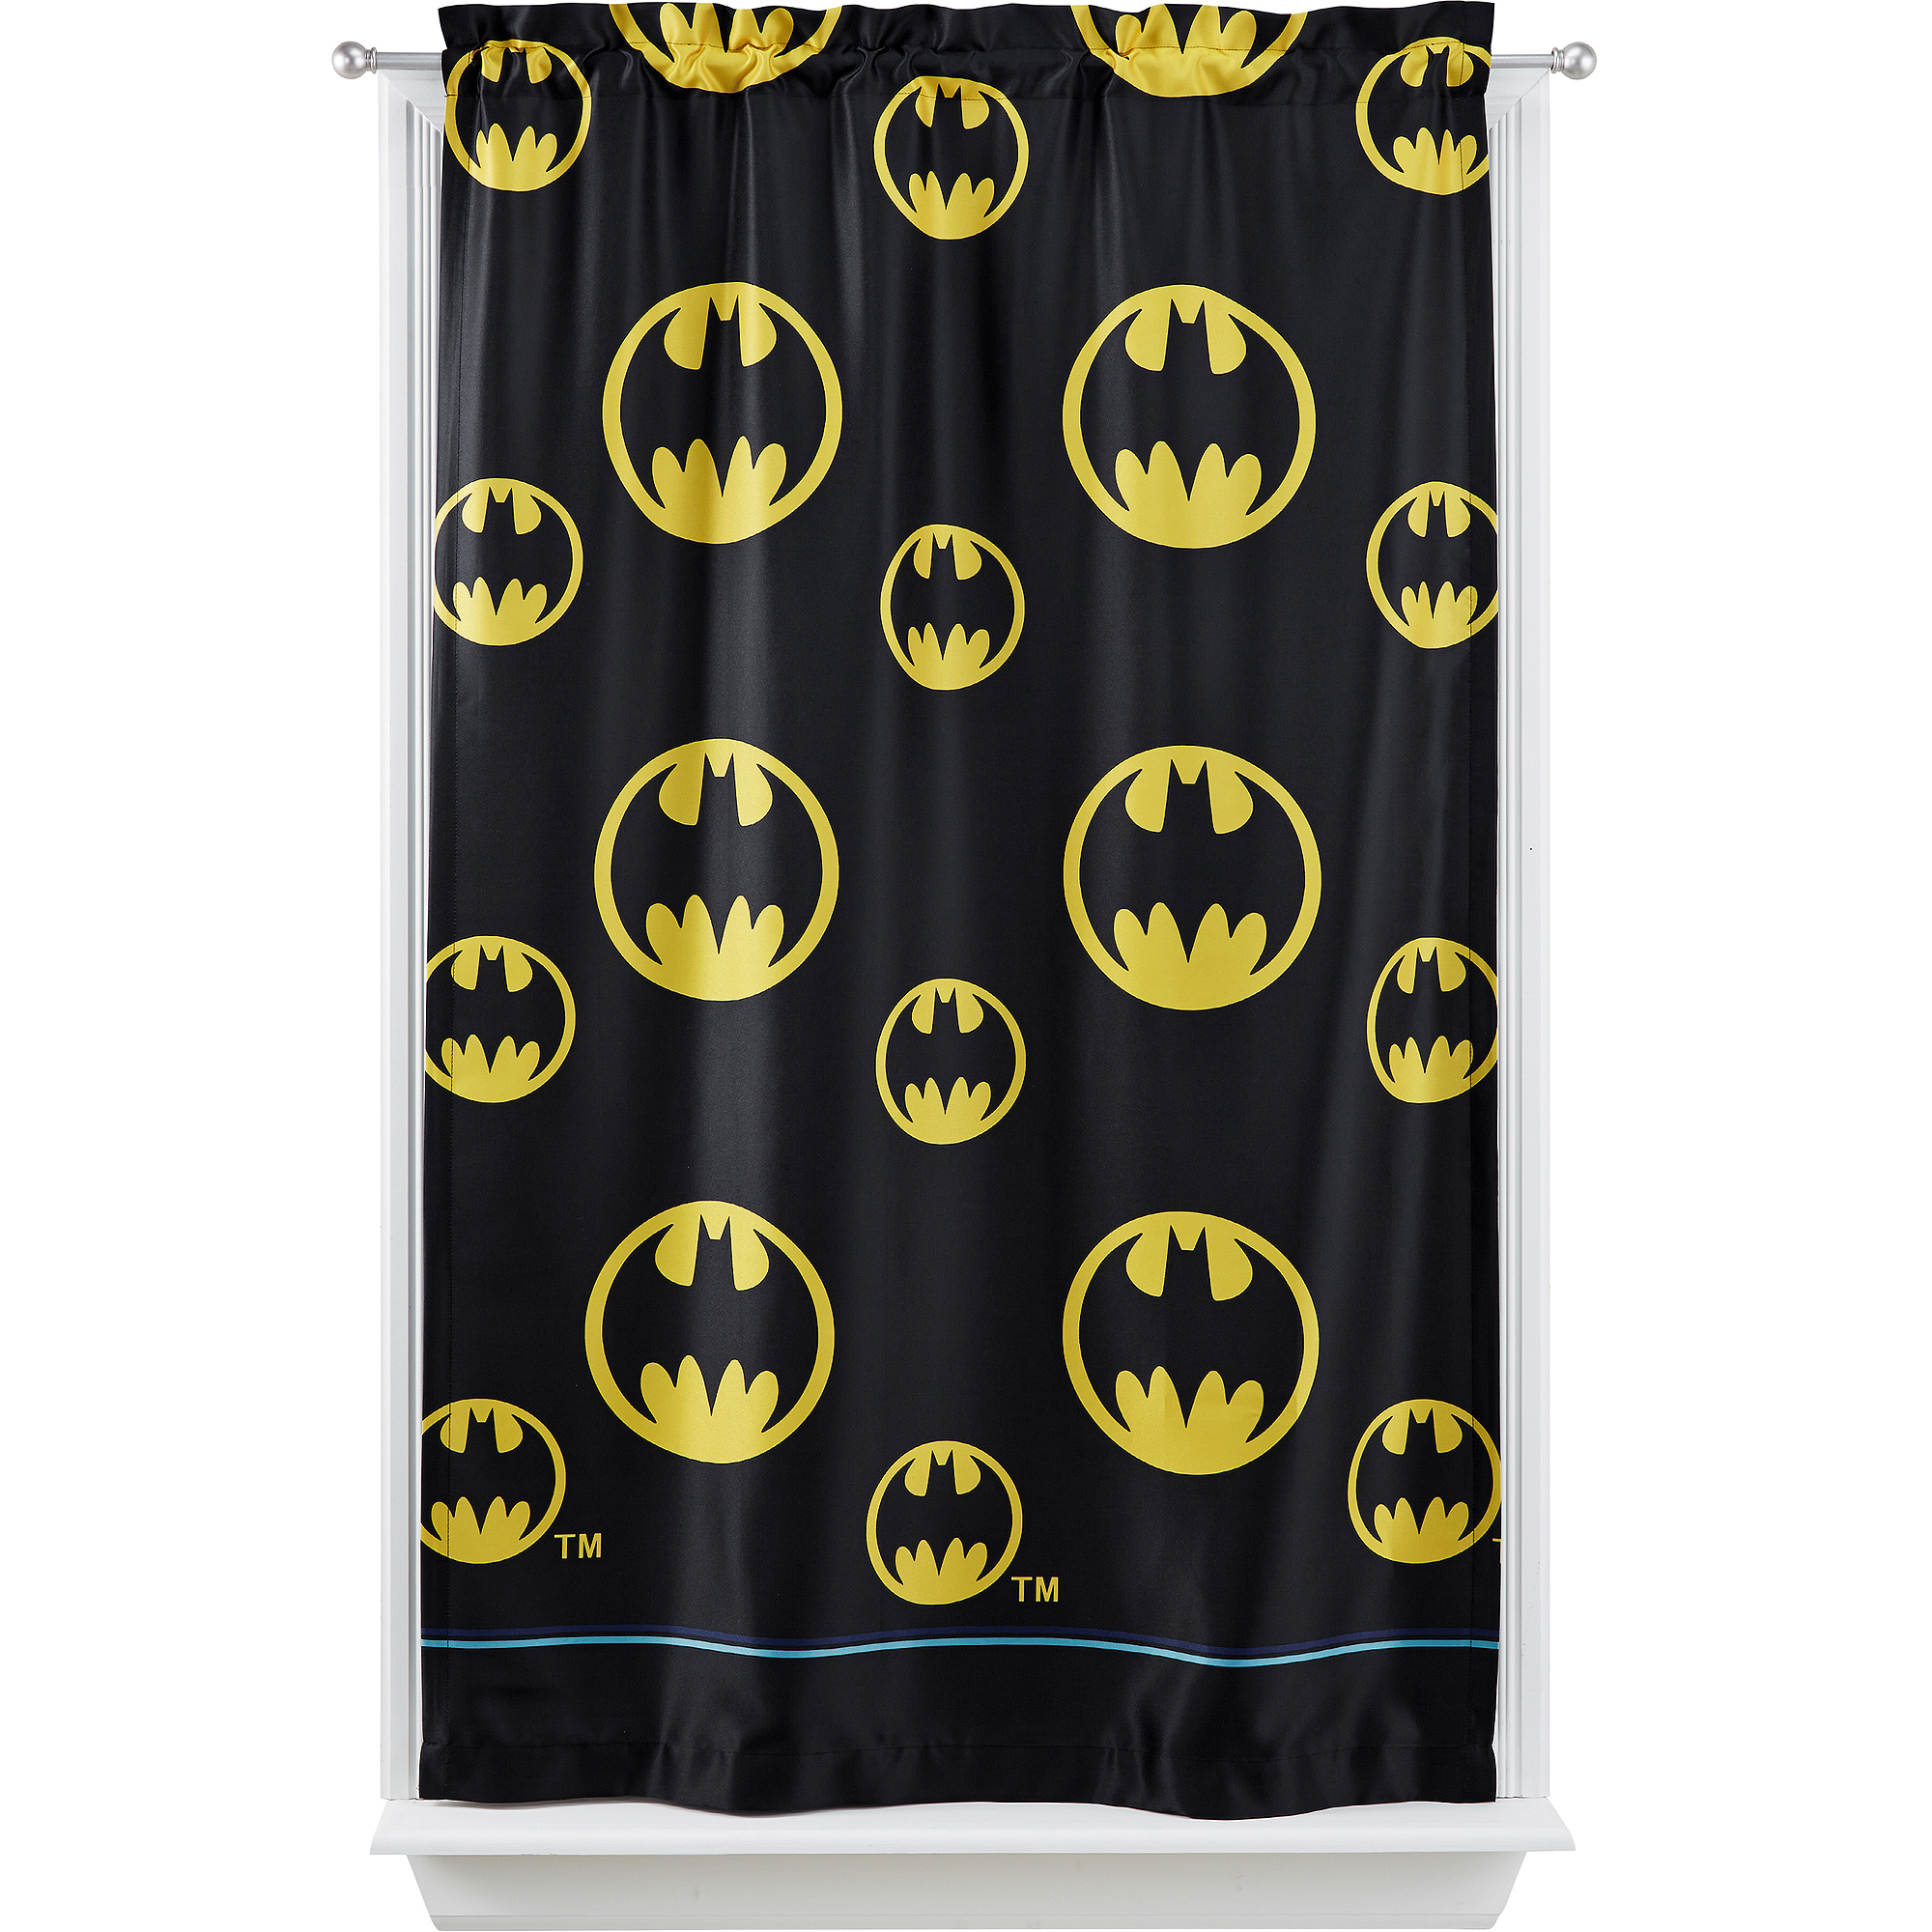 "Warner Bros Batman ""After Dark"" Room Darkening Curtain Panel"